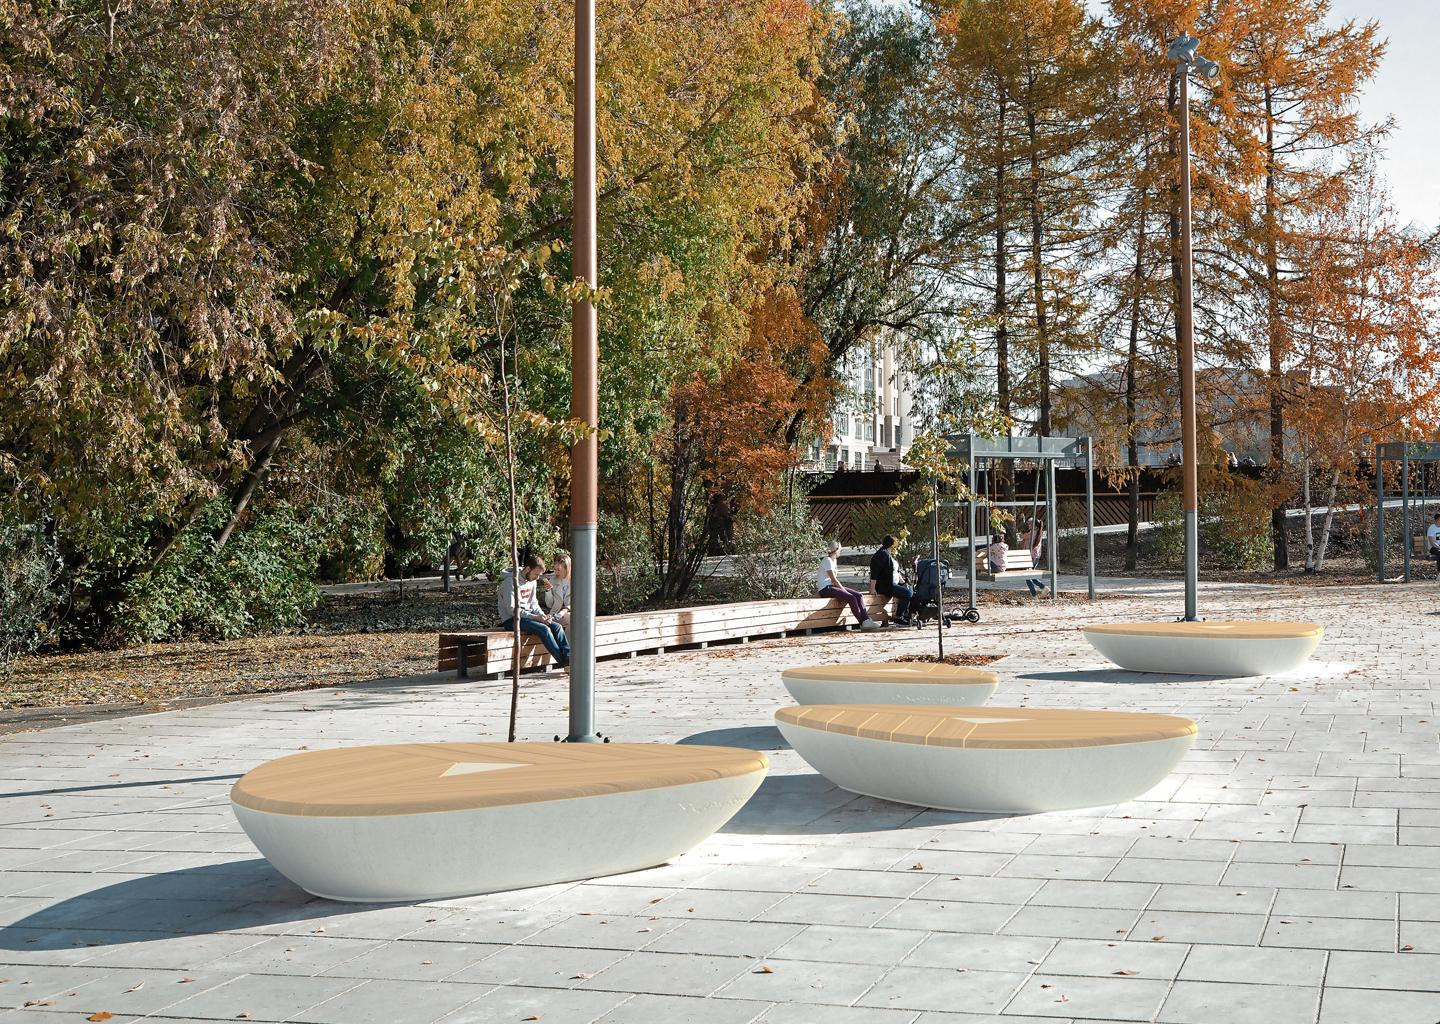 The new modules in the Pebbles collection are the perfect solution for urban spaces improvement!